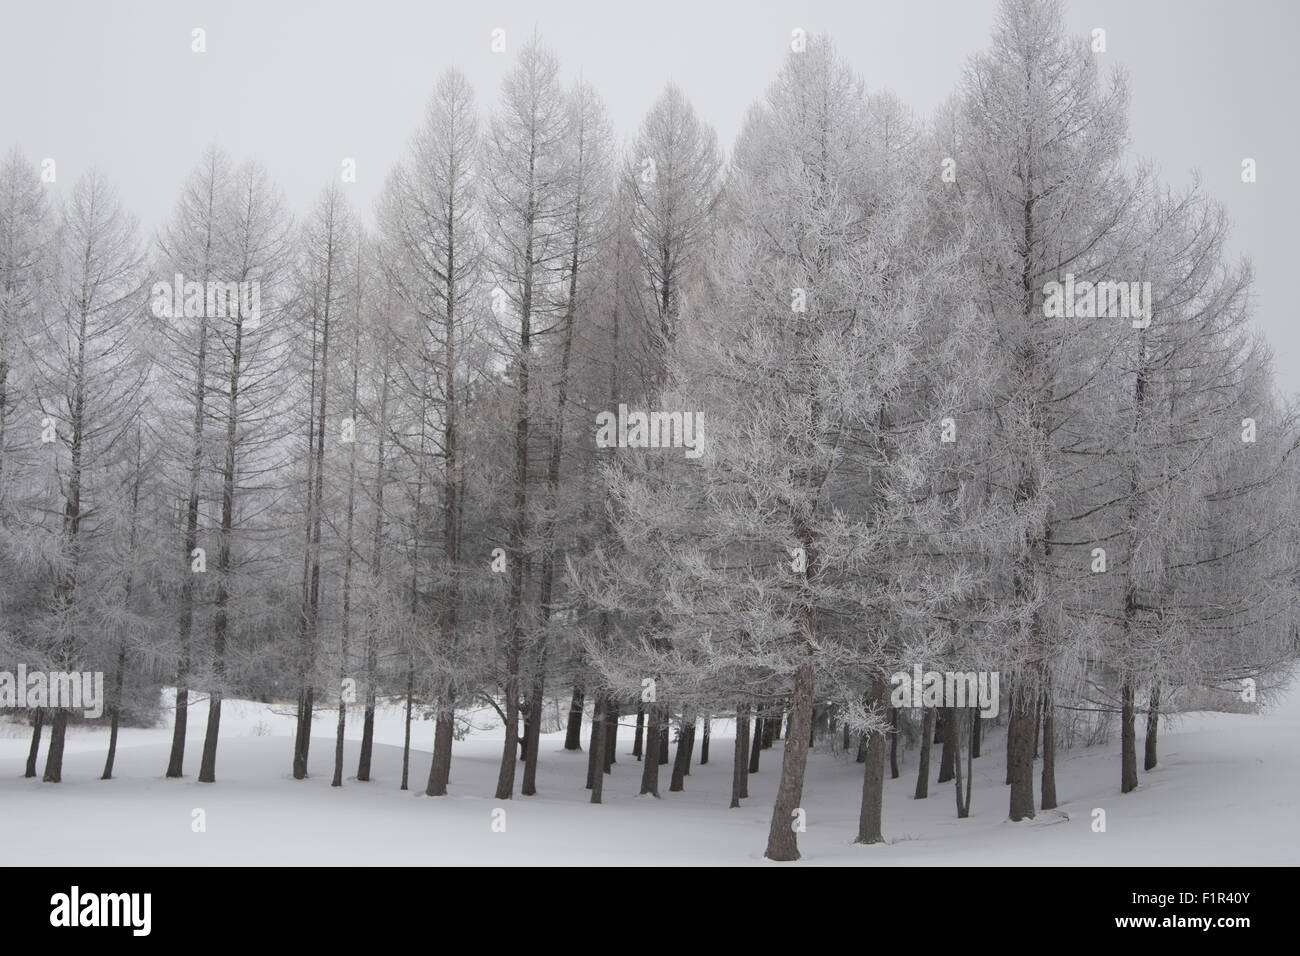 Stark winter scene with snow covered trees - Stock Image